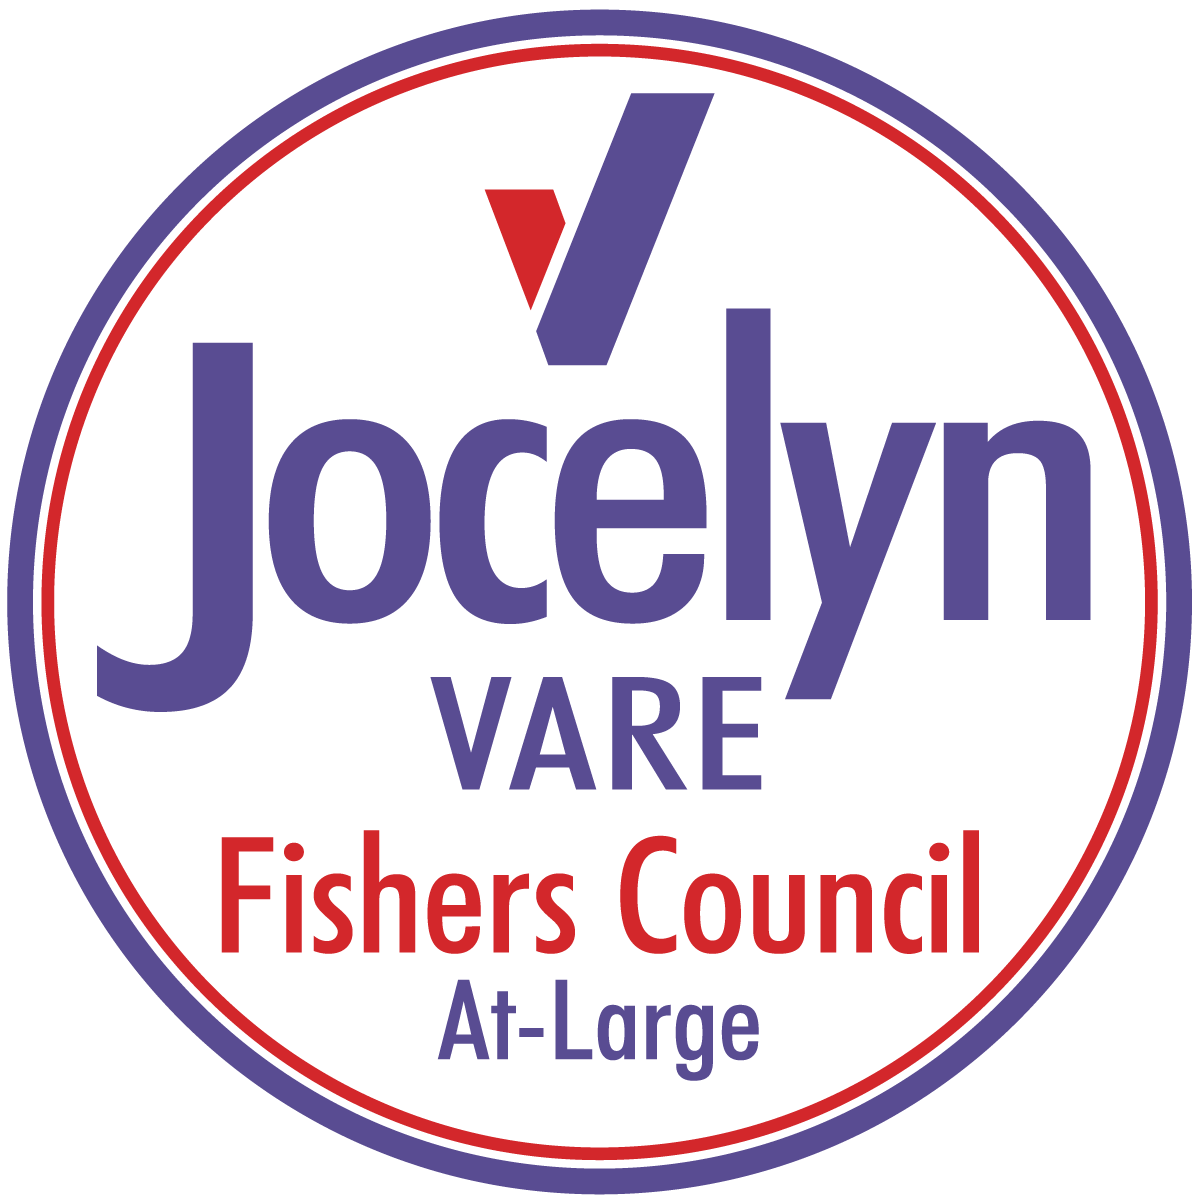 Jocelyn Vare for Fishers